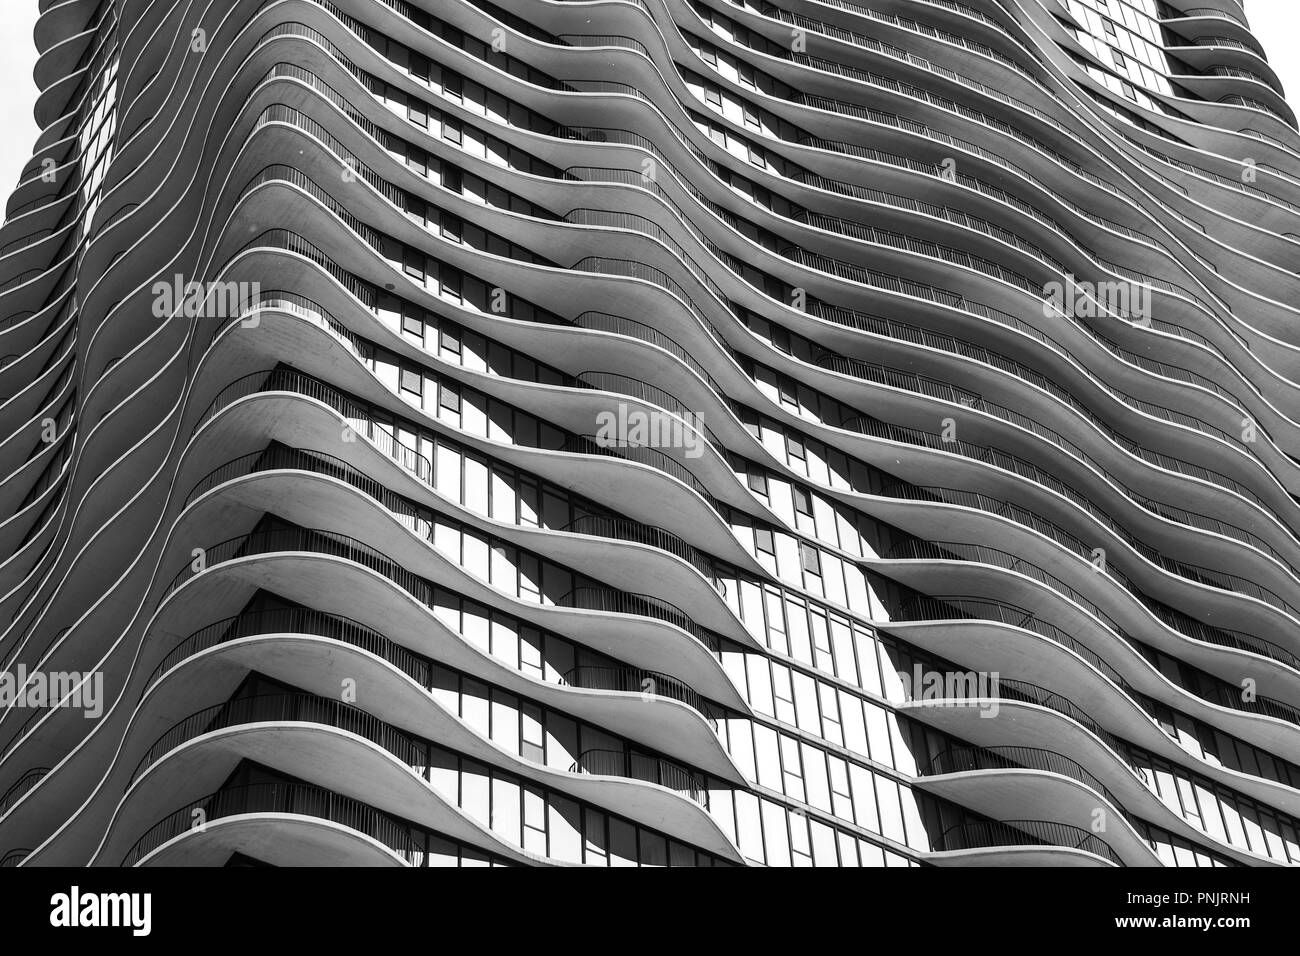 Detail of Aqua Tower by American architect Jeanne Gang, on Columbus Drive, Downtown Chicago, IL.. - Stock Image